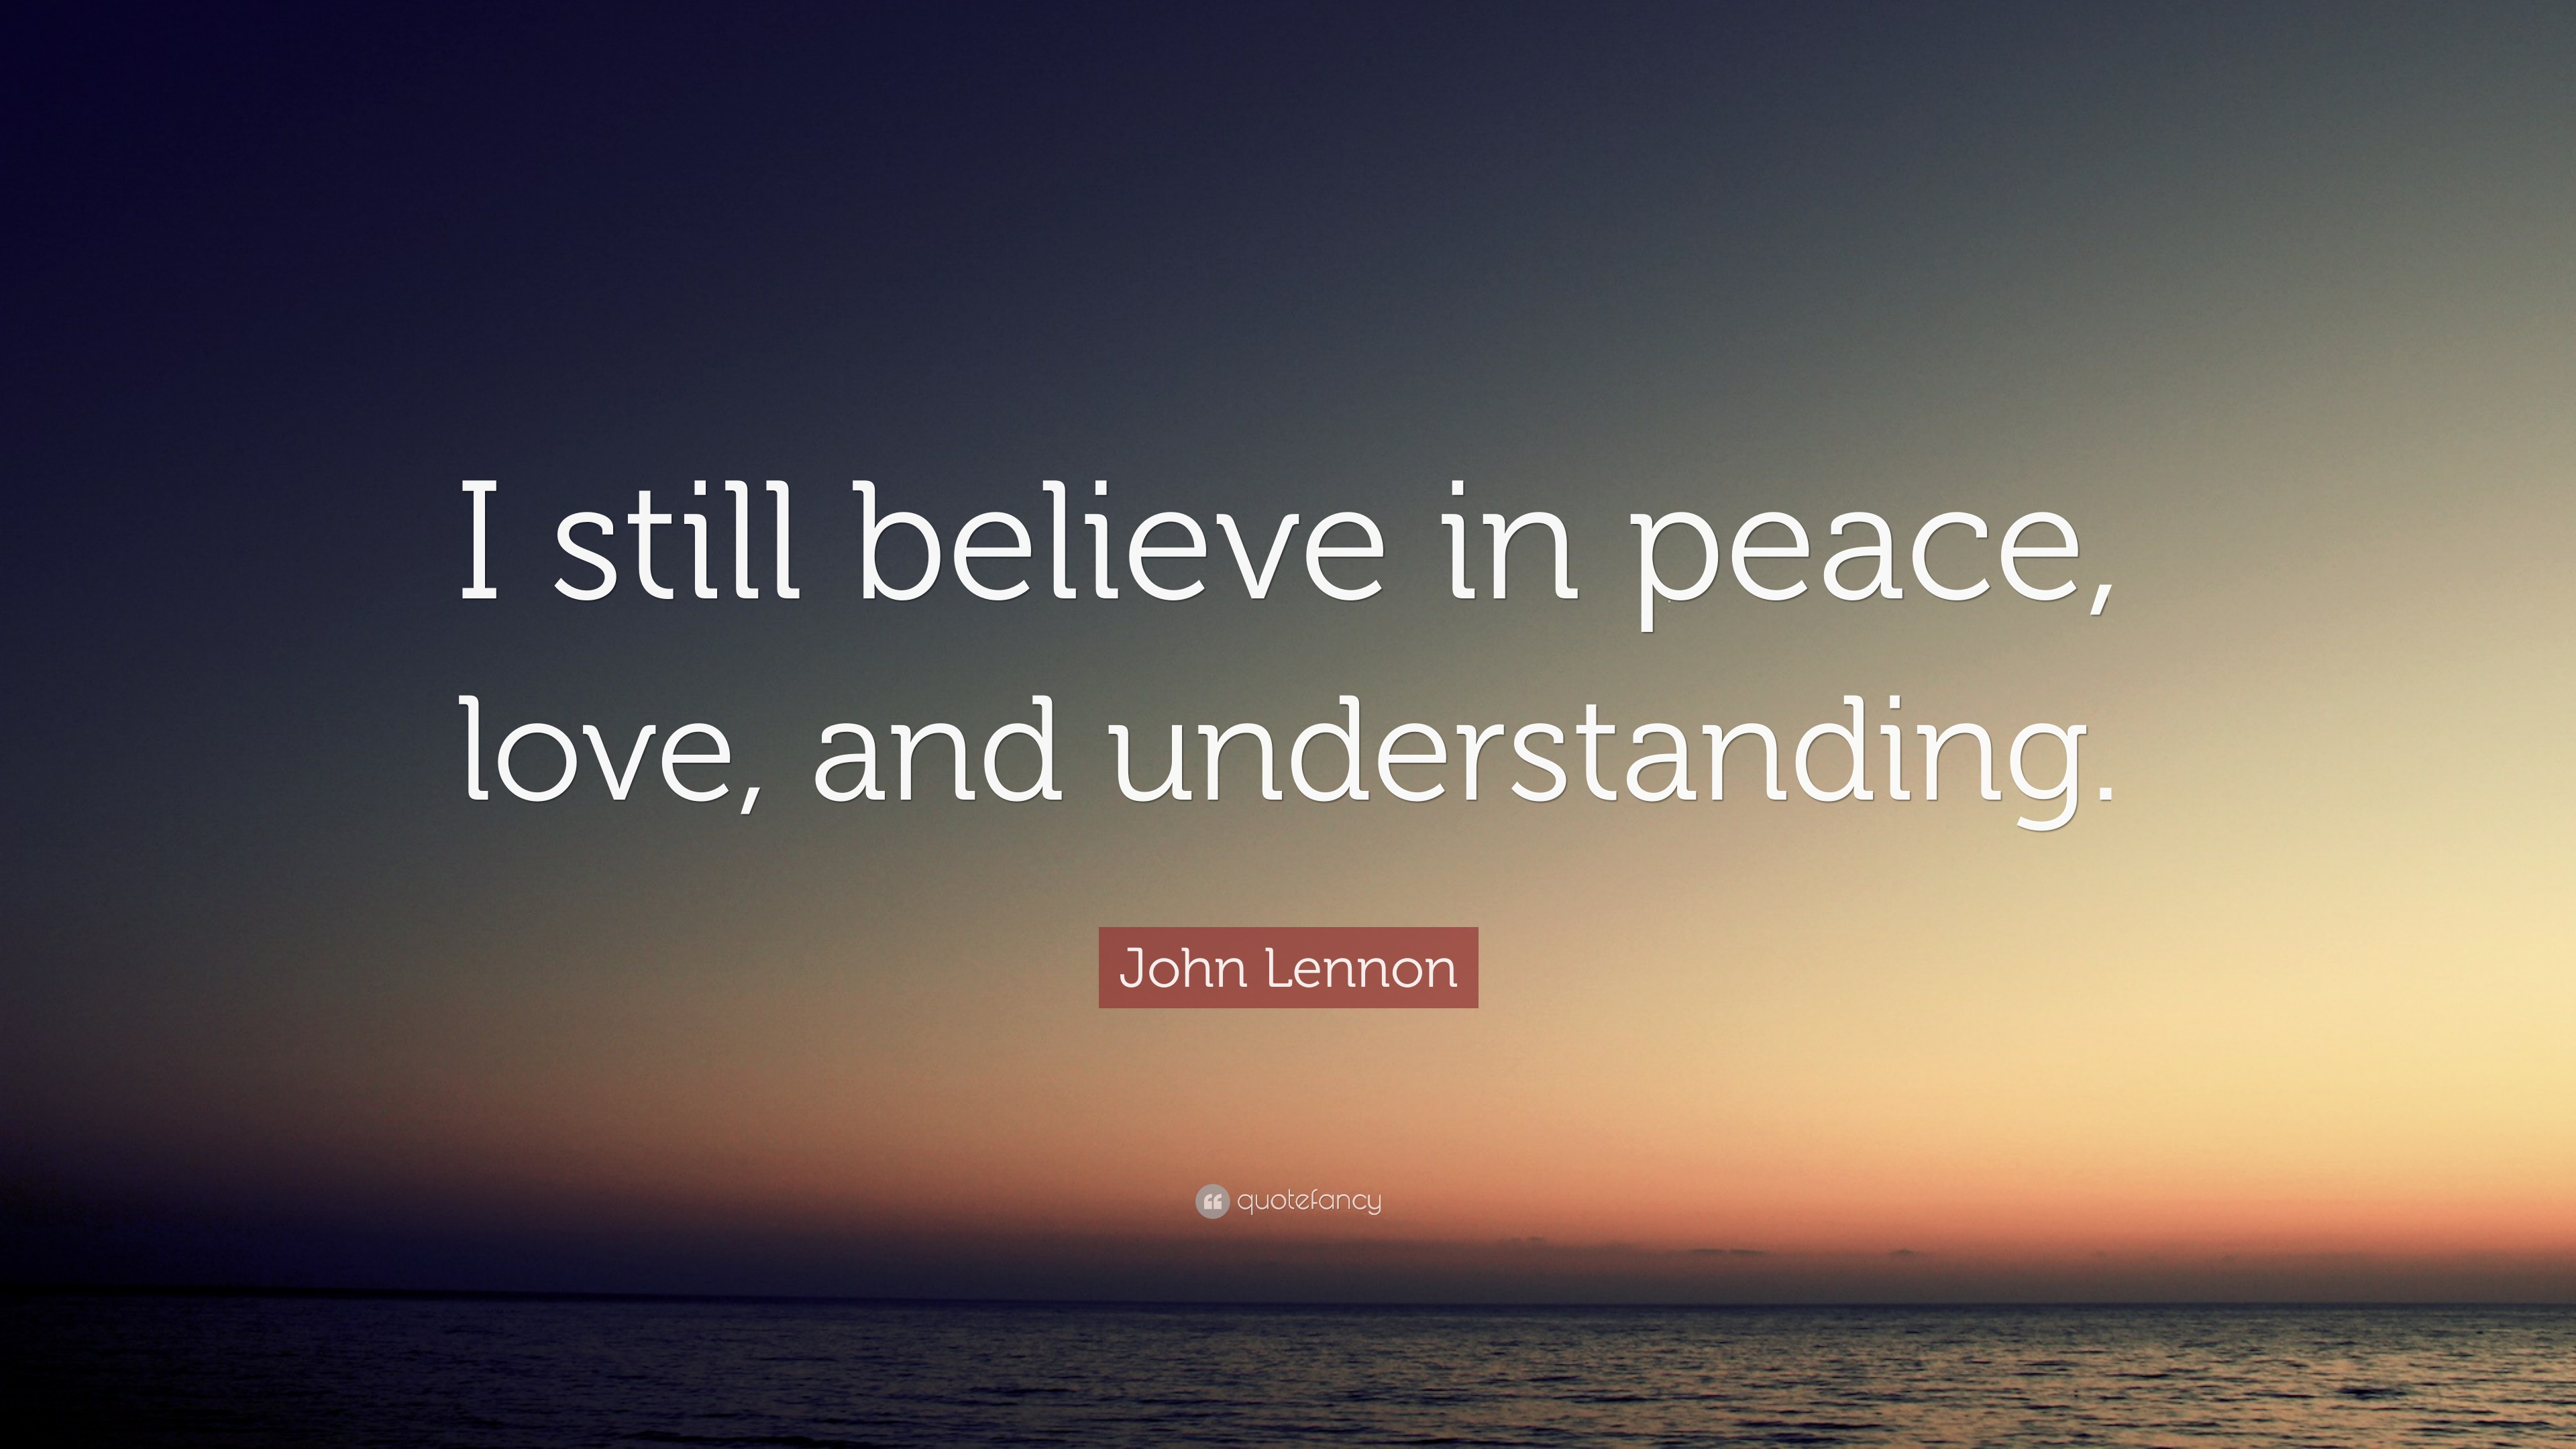 Love And Peace Quotes Love Peace And Understanding Quotes All I Want Is Peace Love